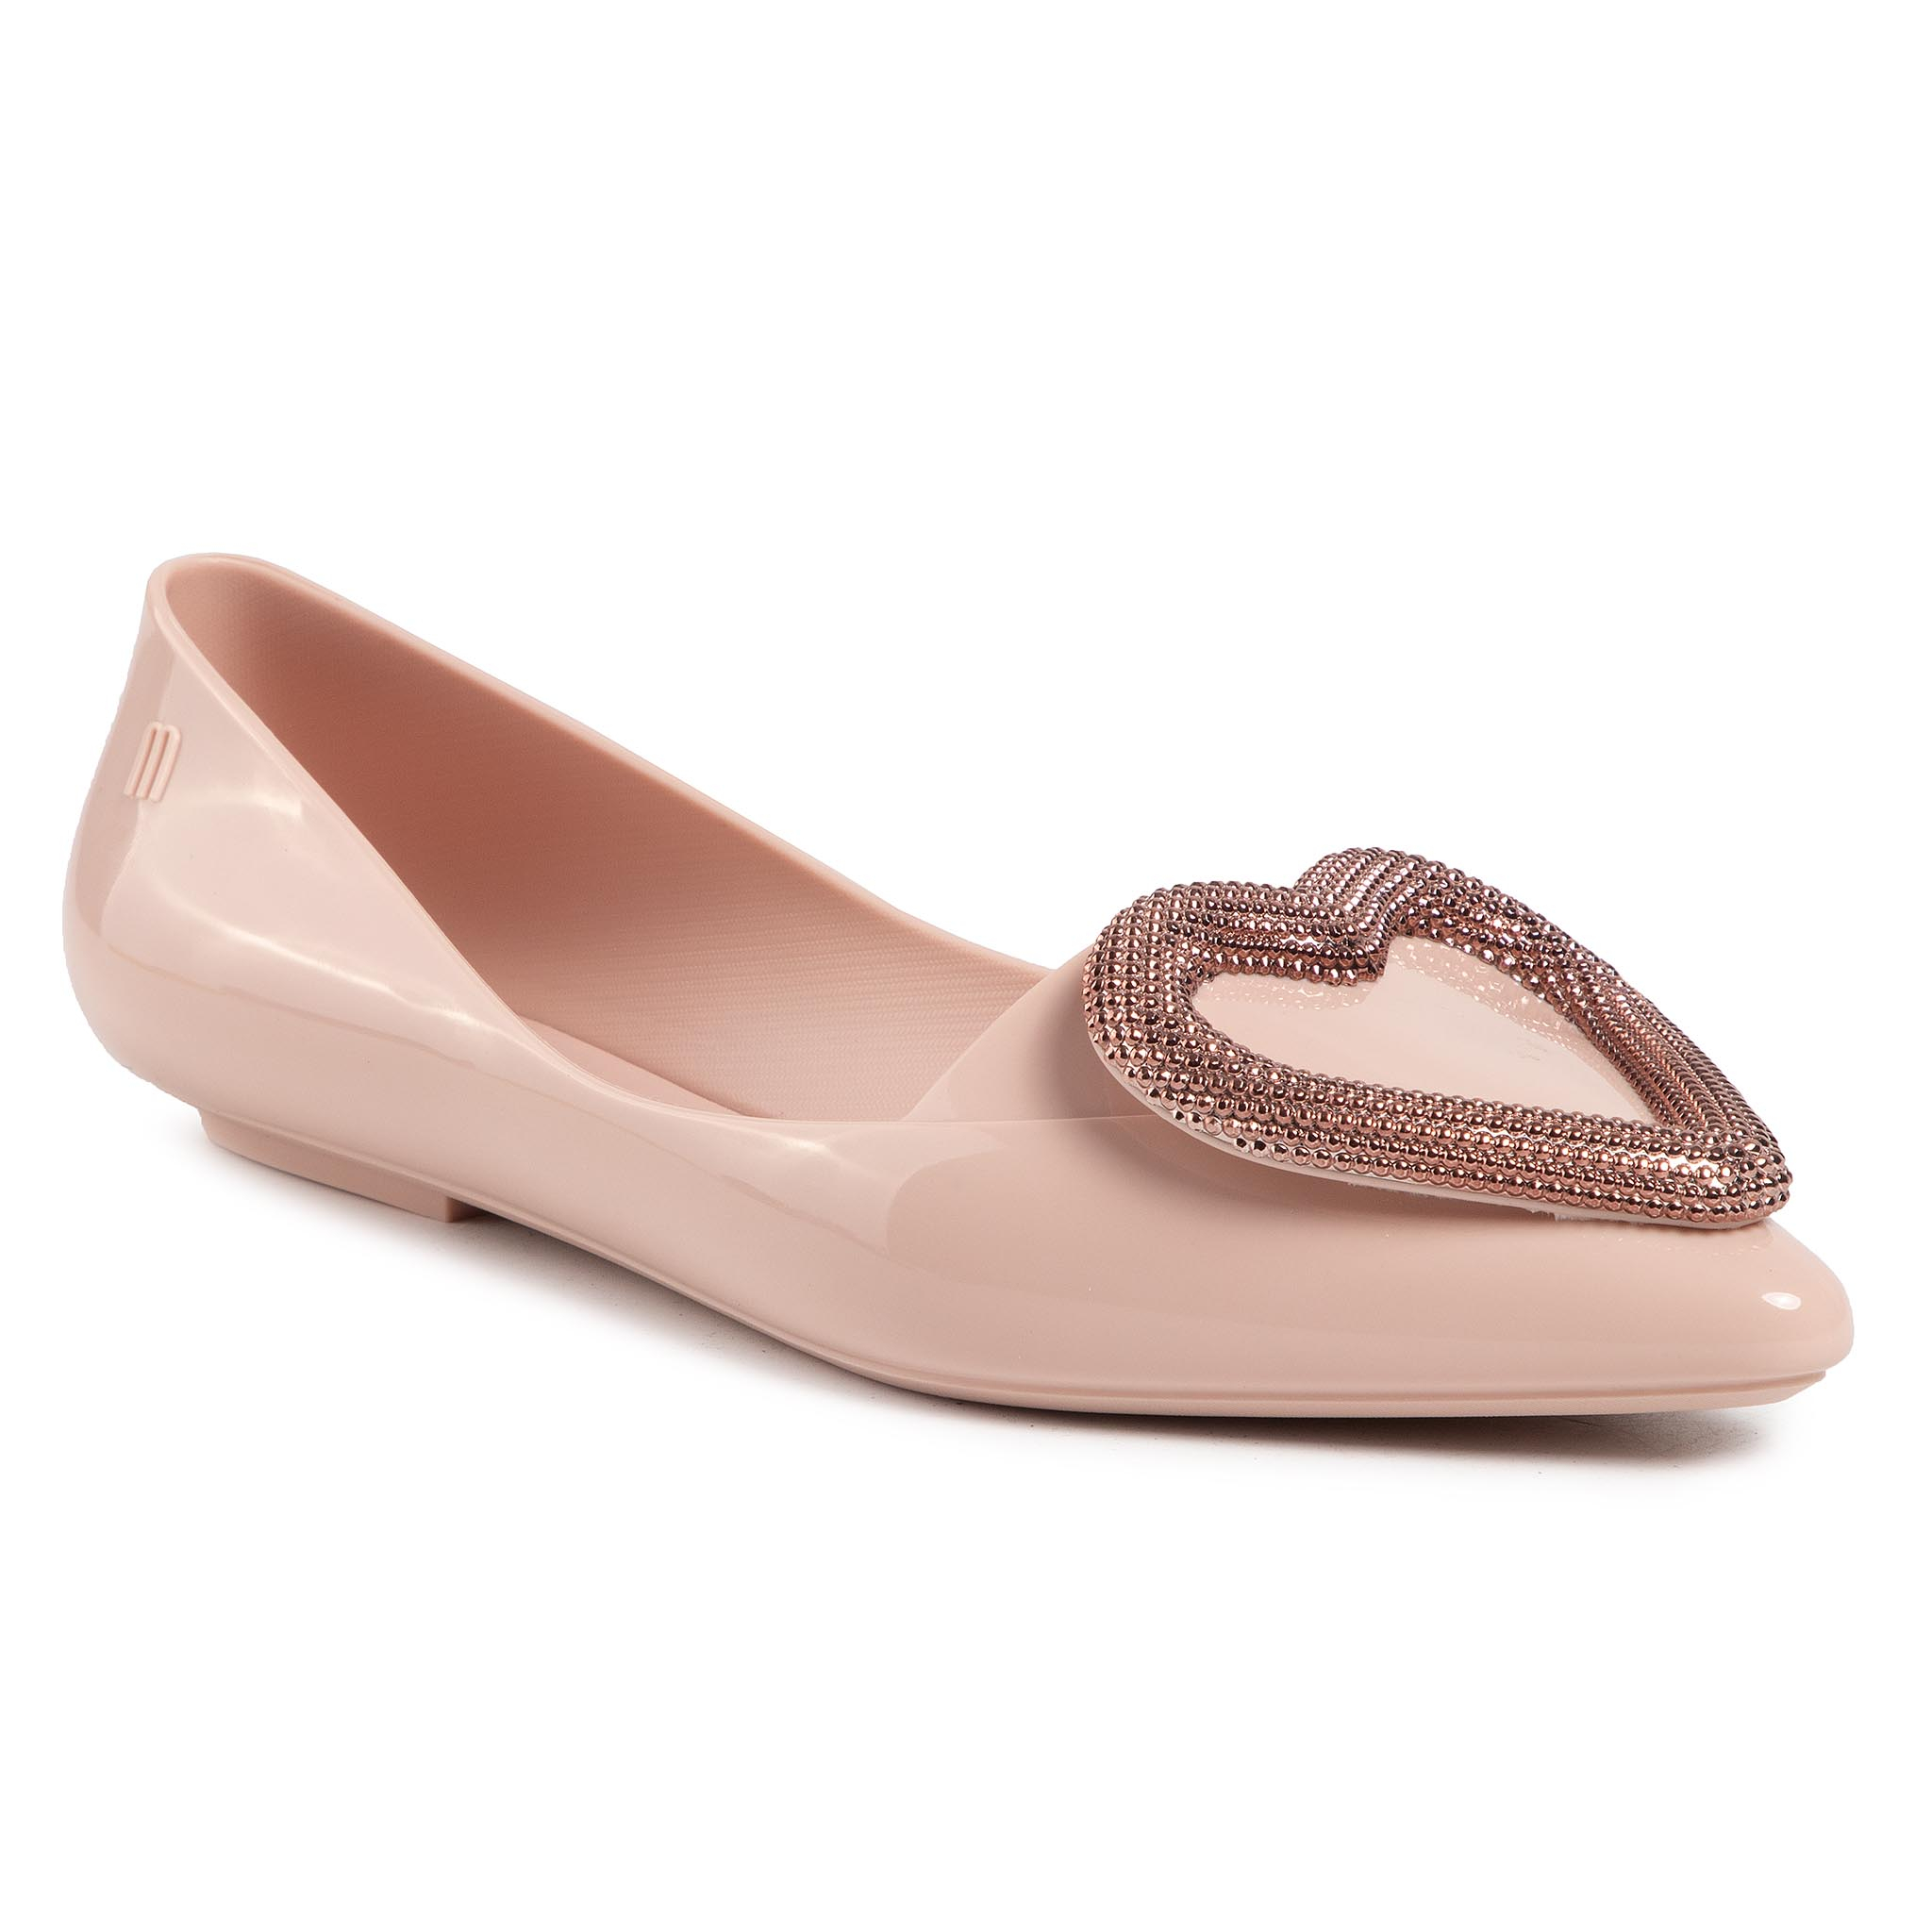 Balerini Melissa - Pointy Heart Ad 32785 Pink/Rose 52932 imagine epantofi.ro